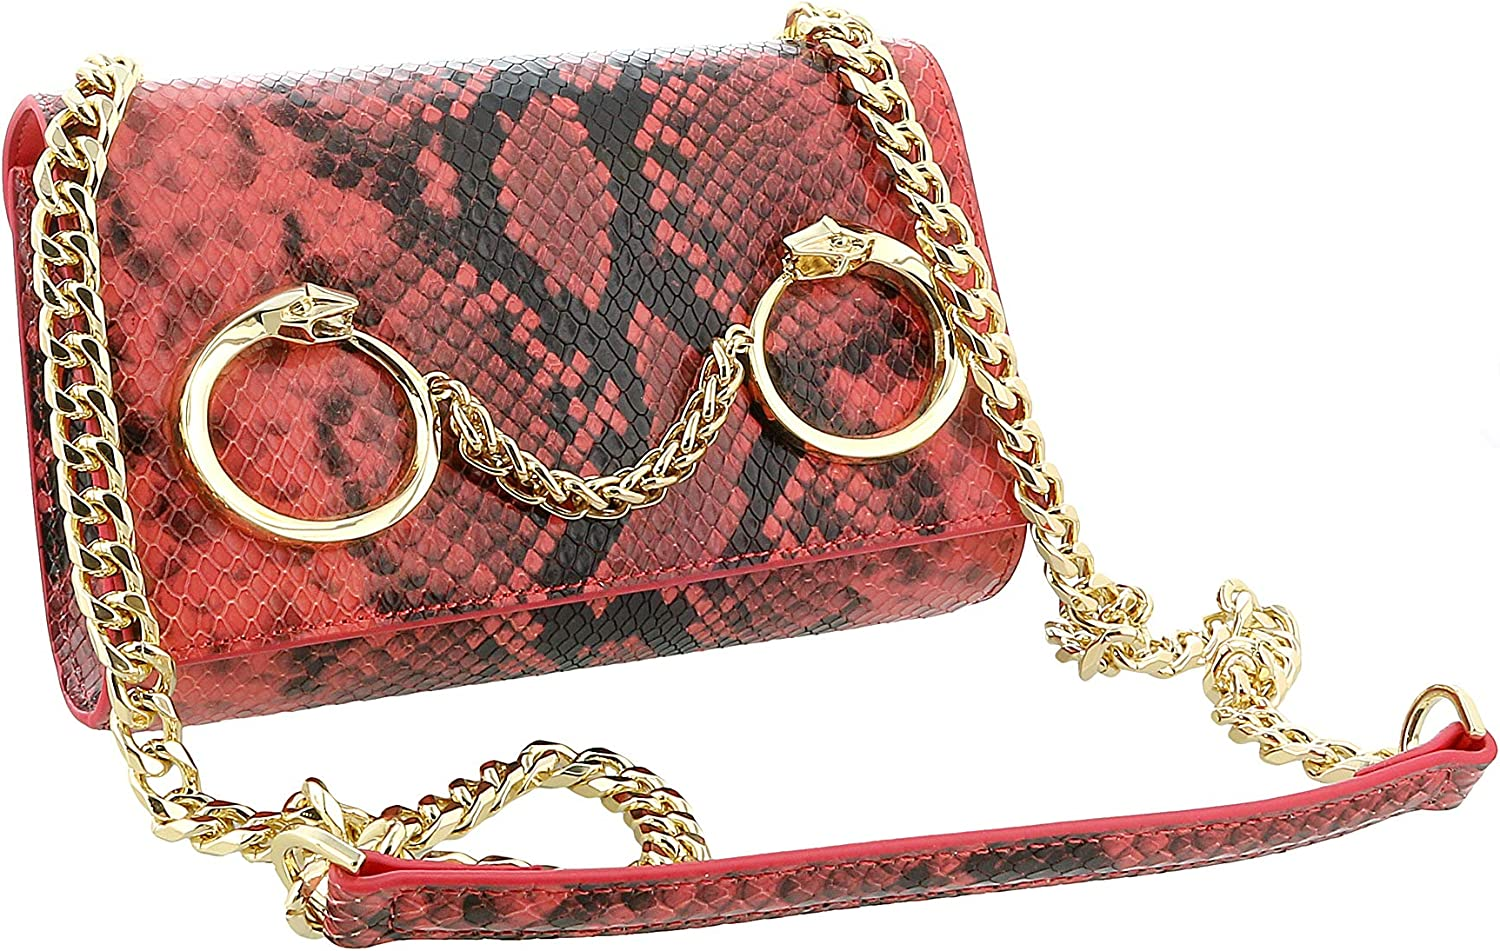 Roberto Cavalli Class Coral Snakeskin Textured Millie Deluxe Small Clutch for womens